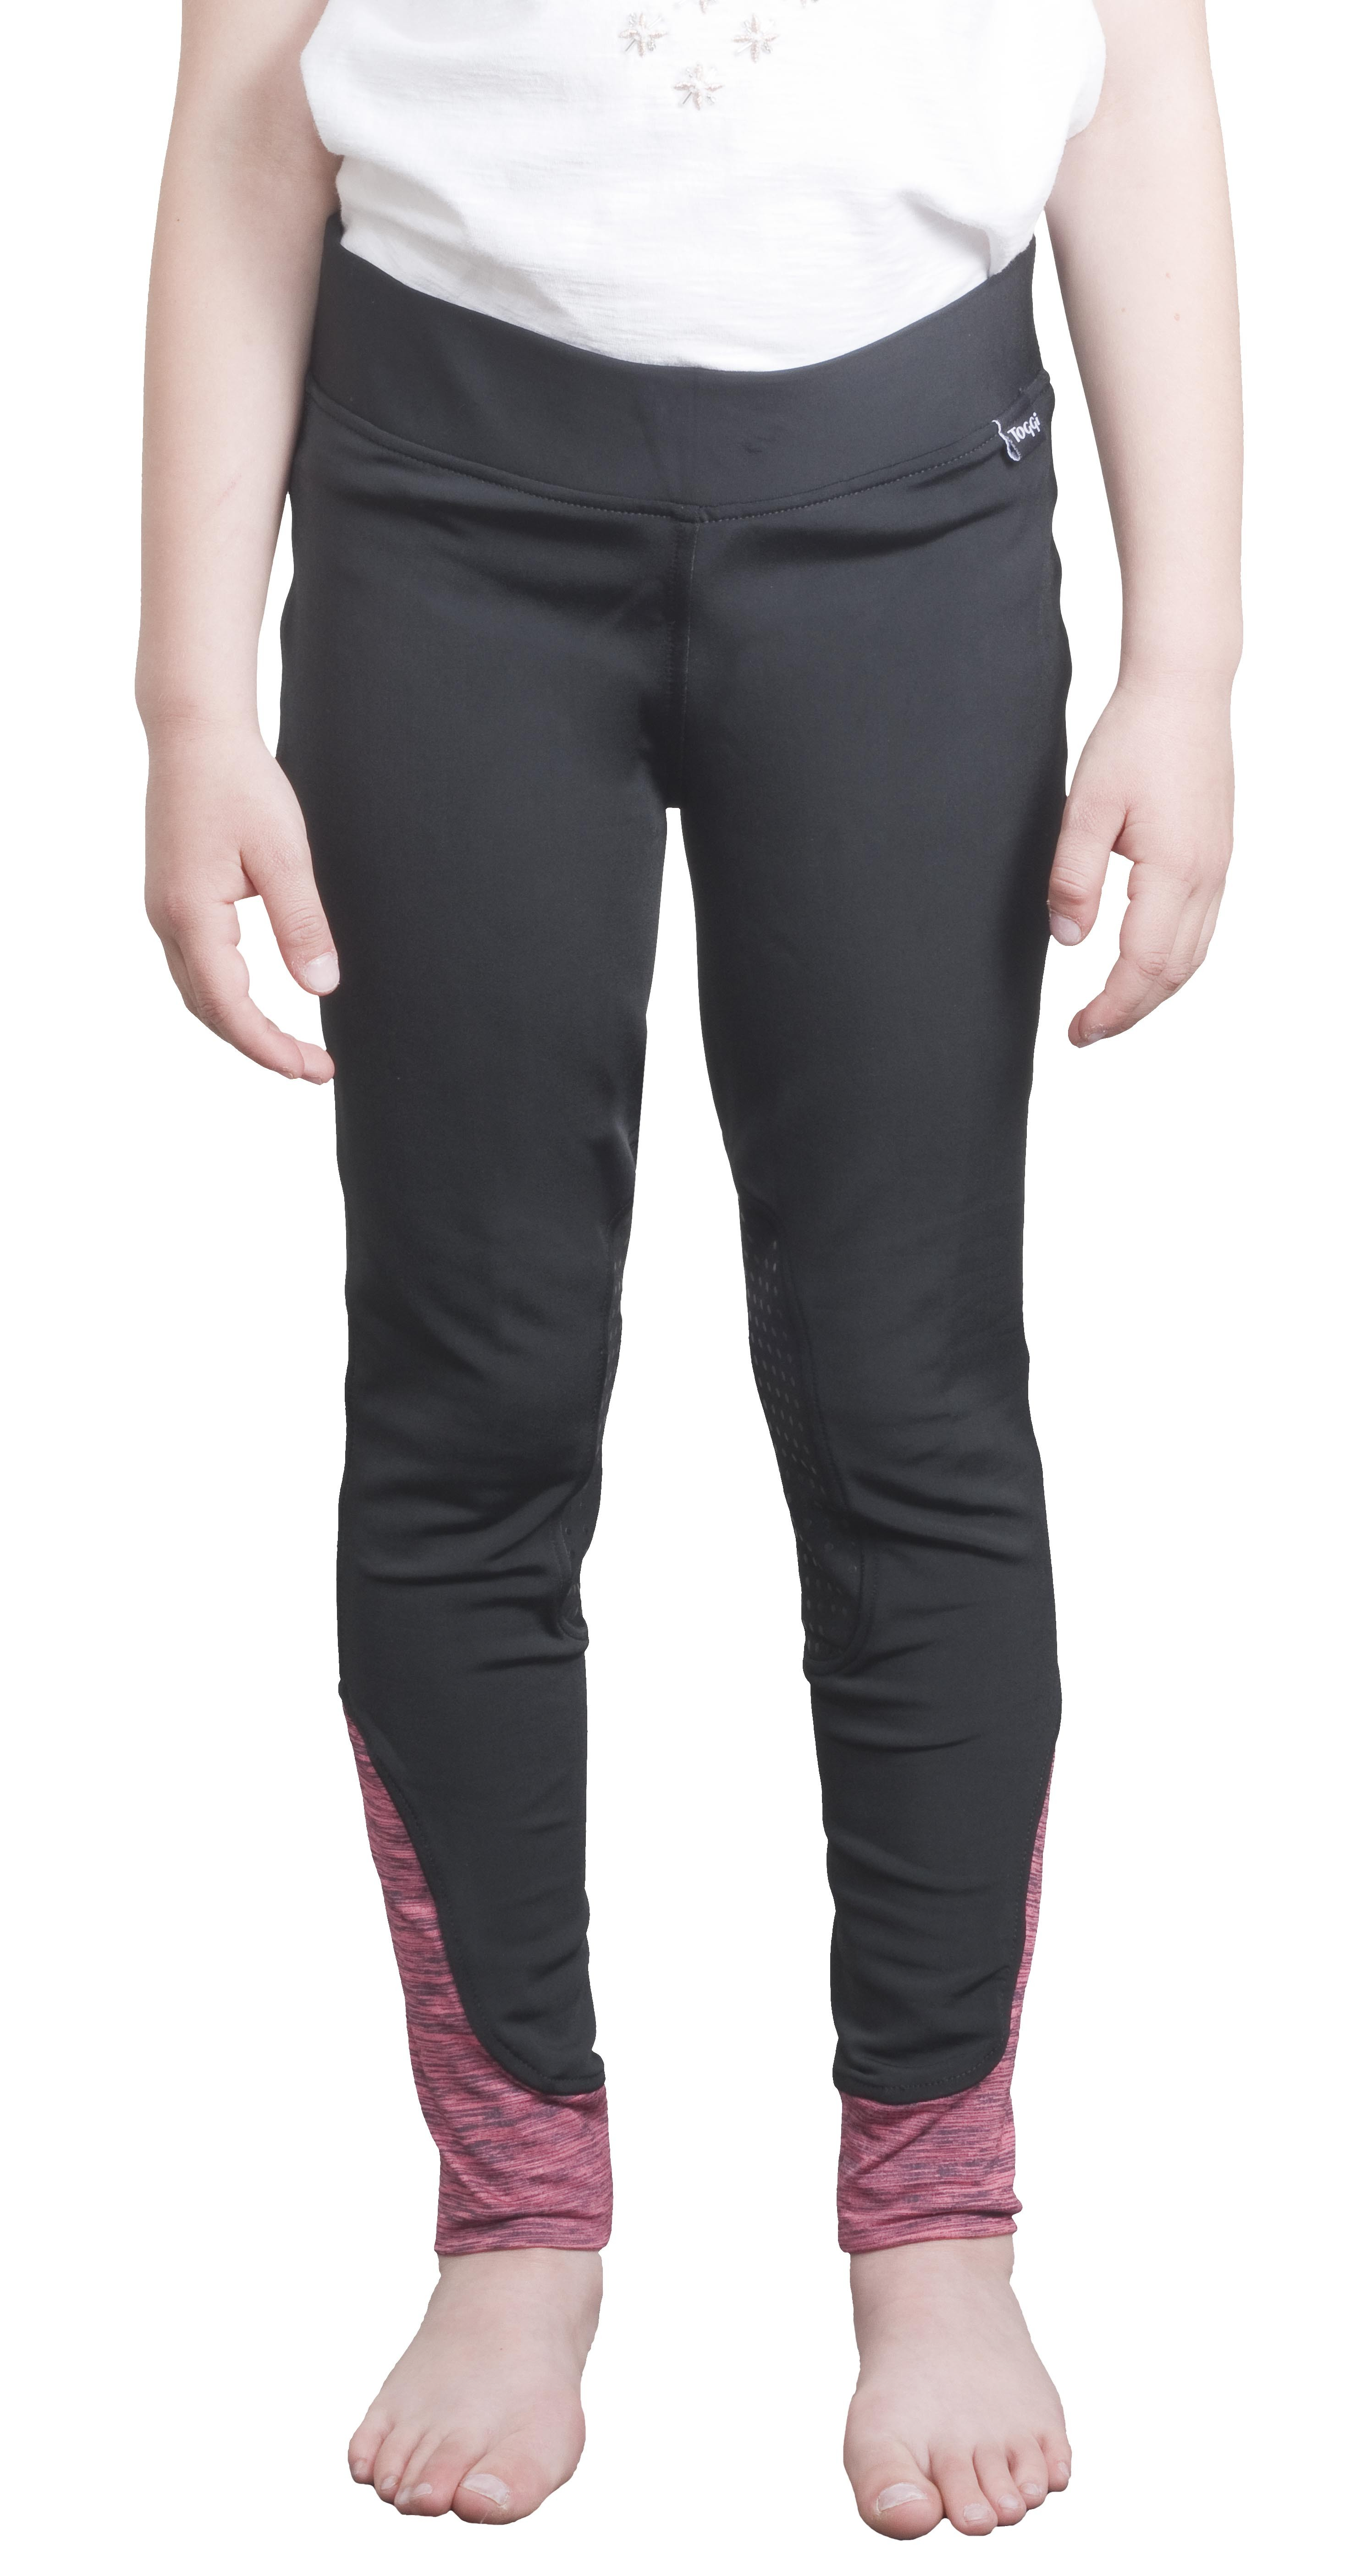 Toggi Lundy Children's Sock Bottom Breeches  - Thomas Irving's equestrian and accessories store  Toggi Lundy Children's Sock Bottom Breeches